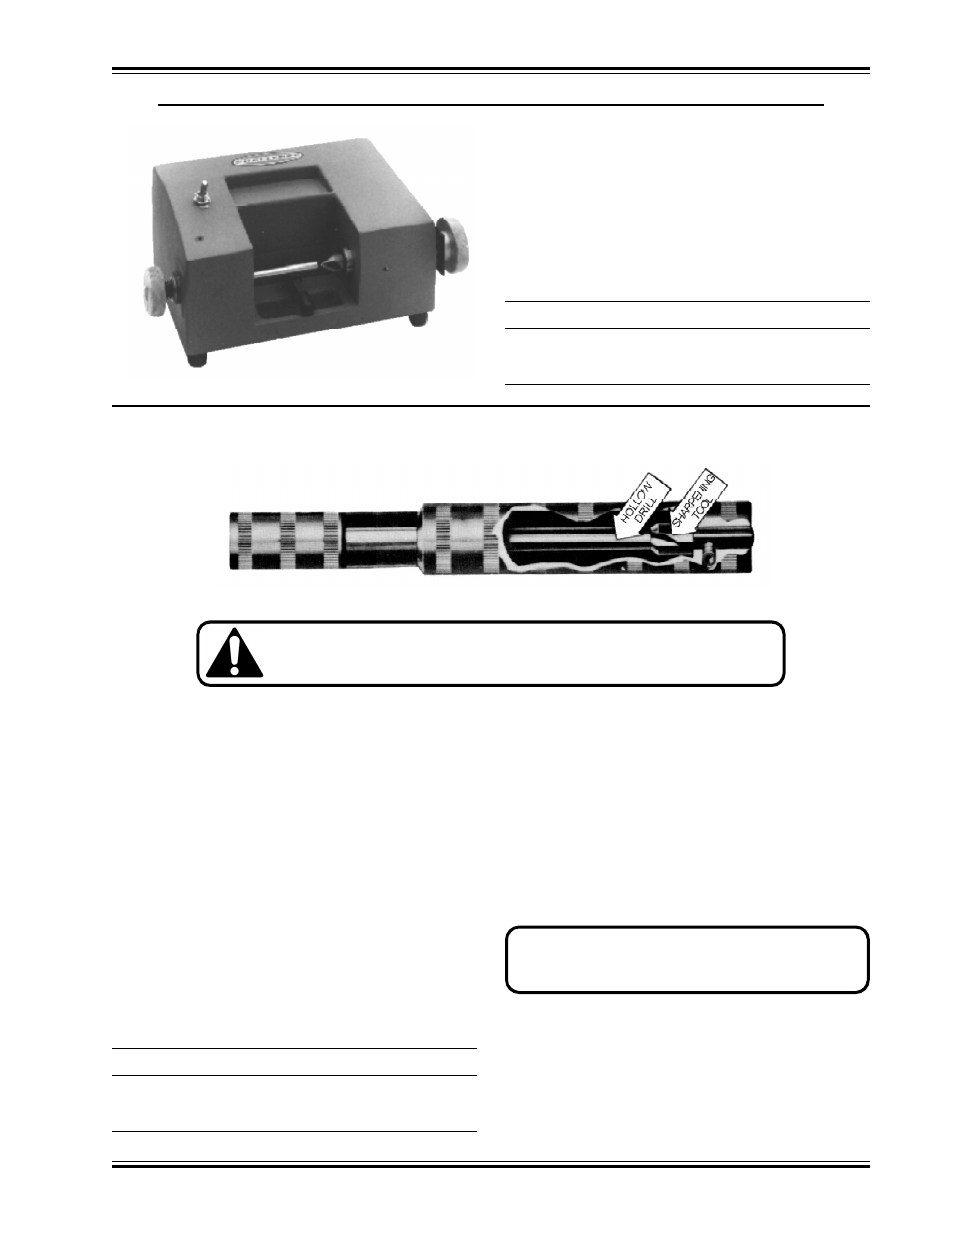 Hollow drill sharpener   GBC MS5 User Manual   Page 13 / 51